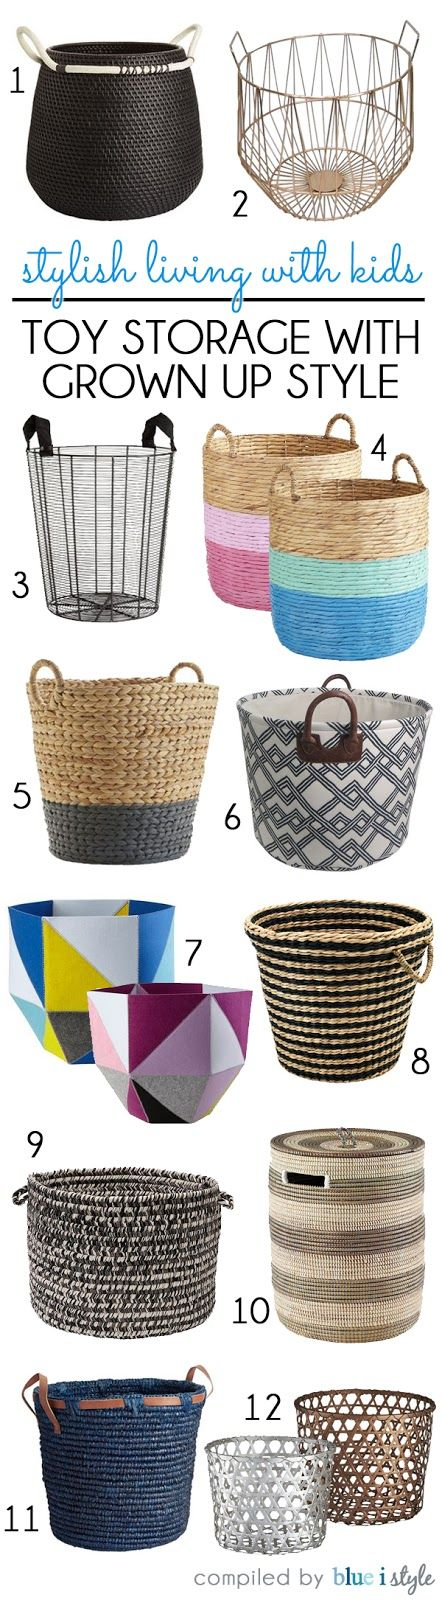 Toy Storage Baskets With Grown Up Style Kids Storage Baskets Toddler Toy Storage Toy Room Storage